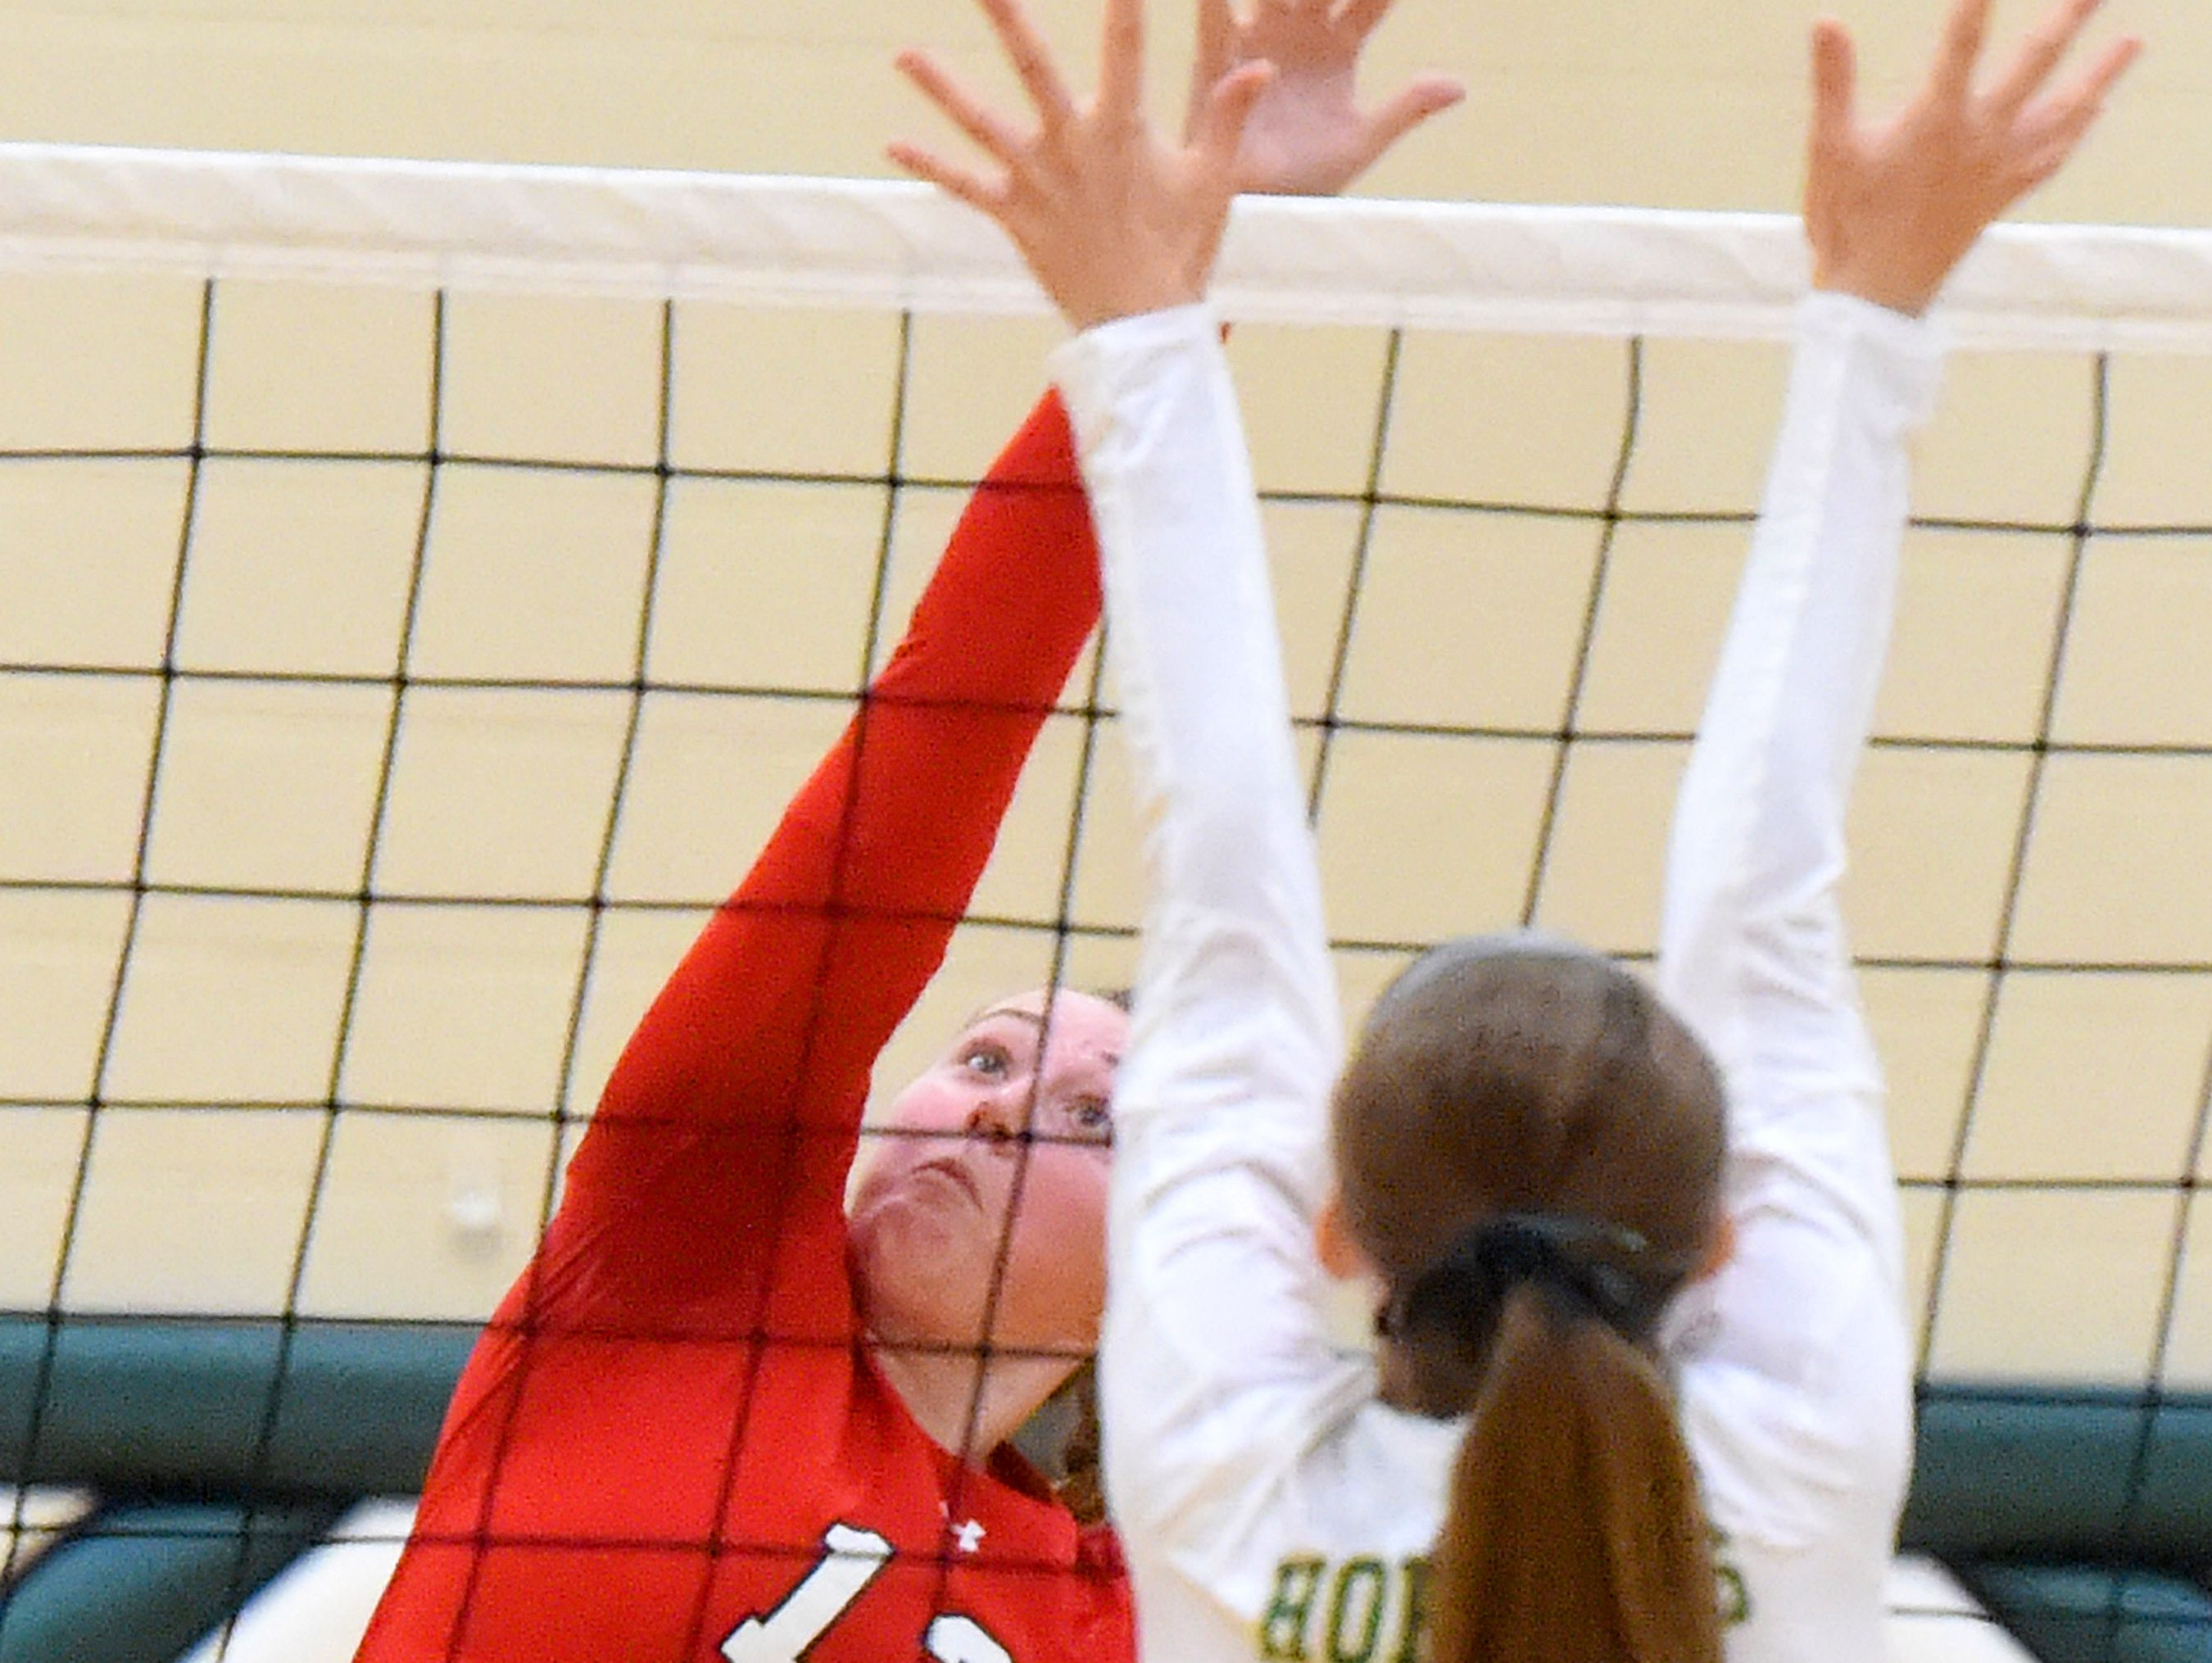 Riverheads' Emma Casto hits the ball back across the net from Emma Harrison during a volleyball match played in Fishersville on Thursday, Oct. 20, 2016.